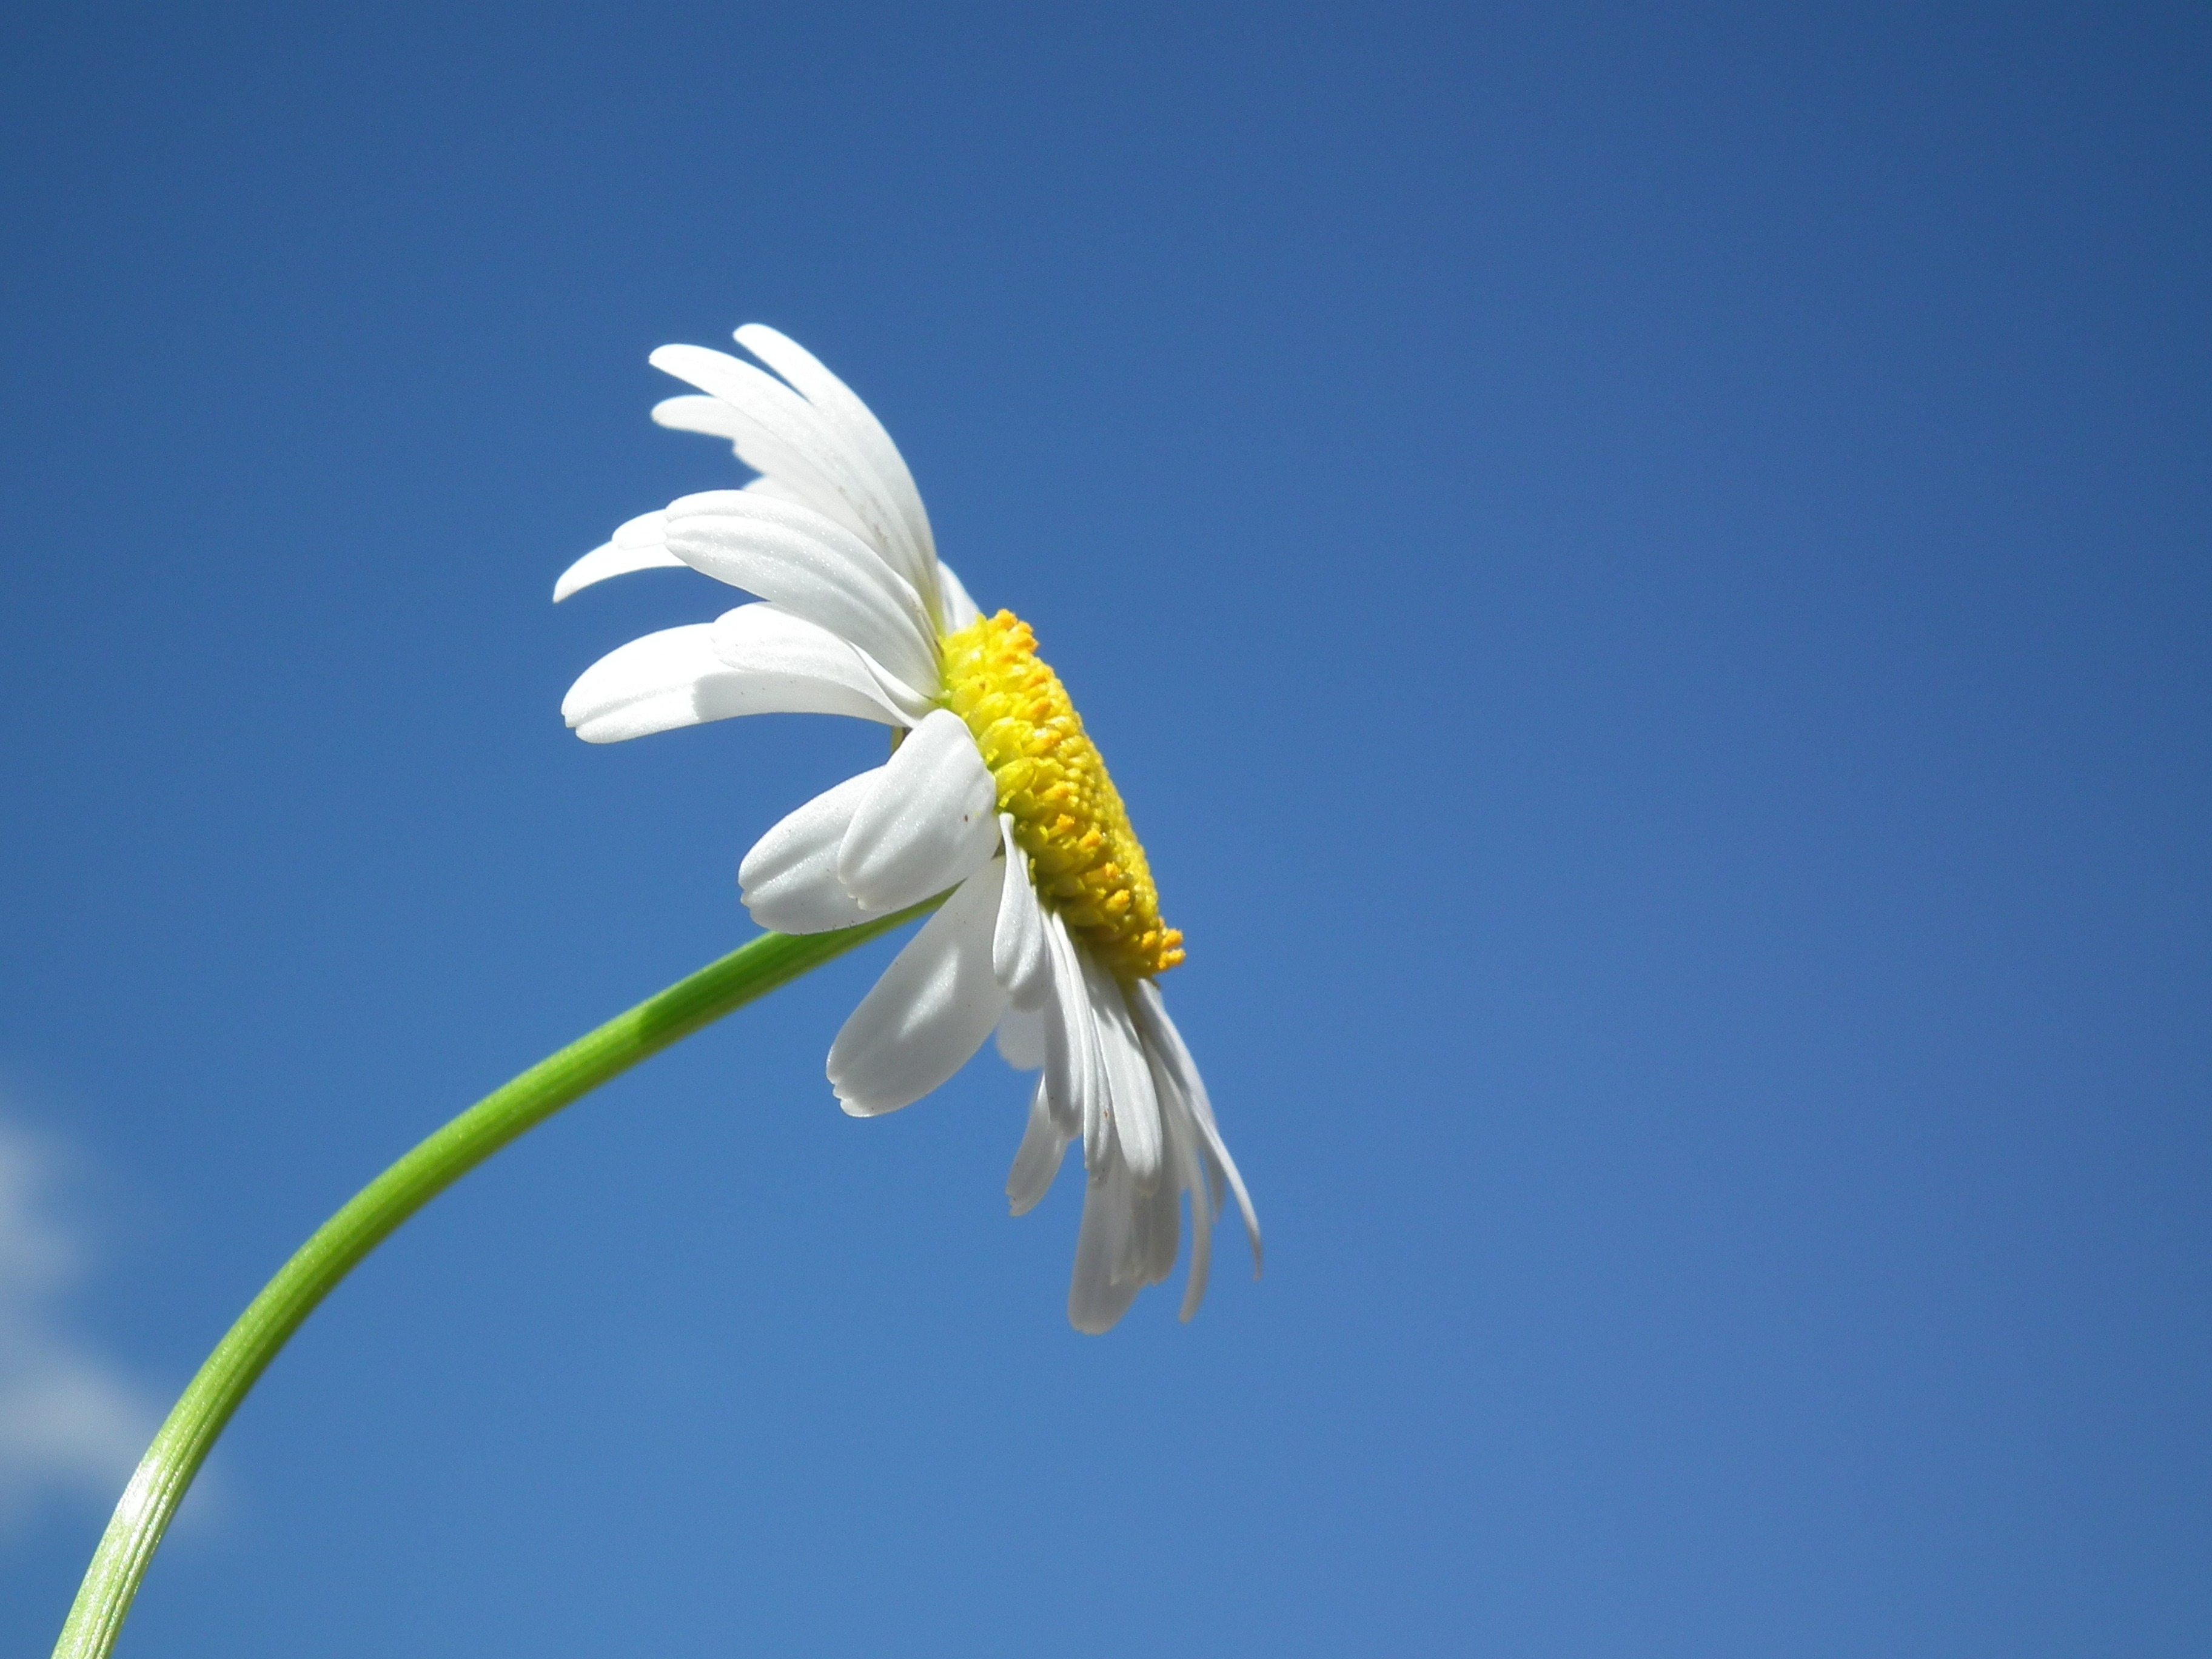 white daisy under blue and white cloudy sky free stock photo